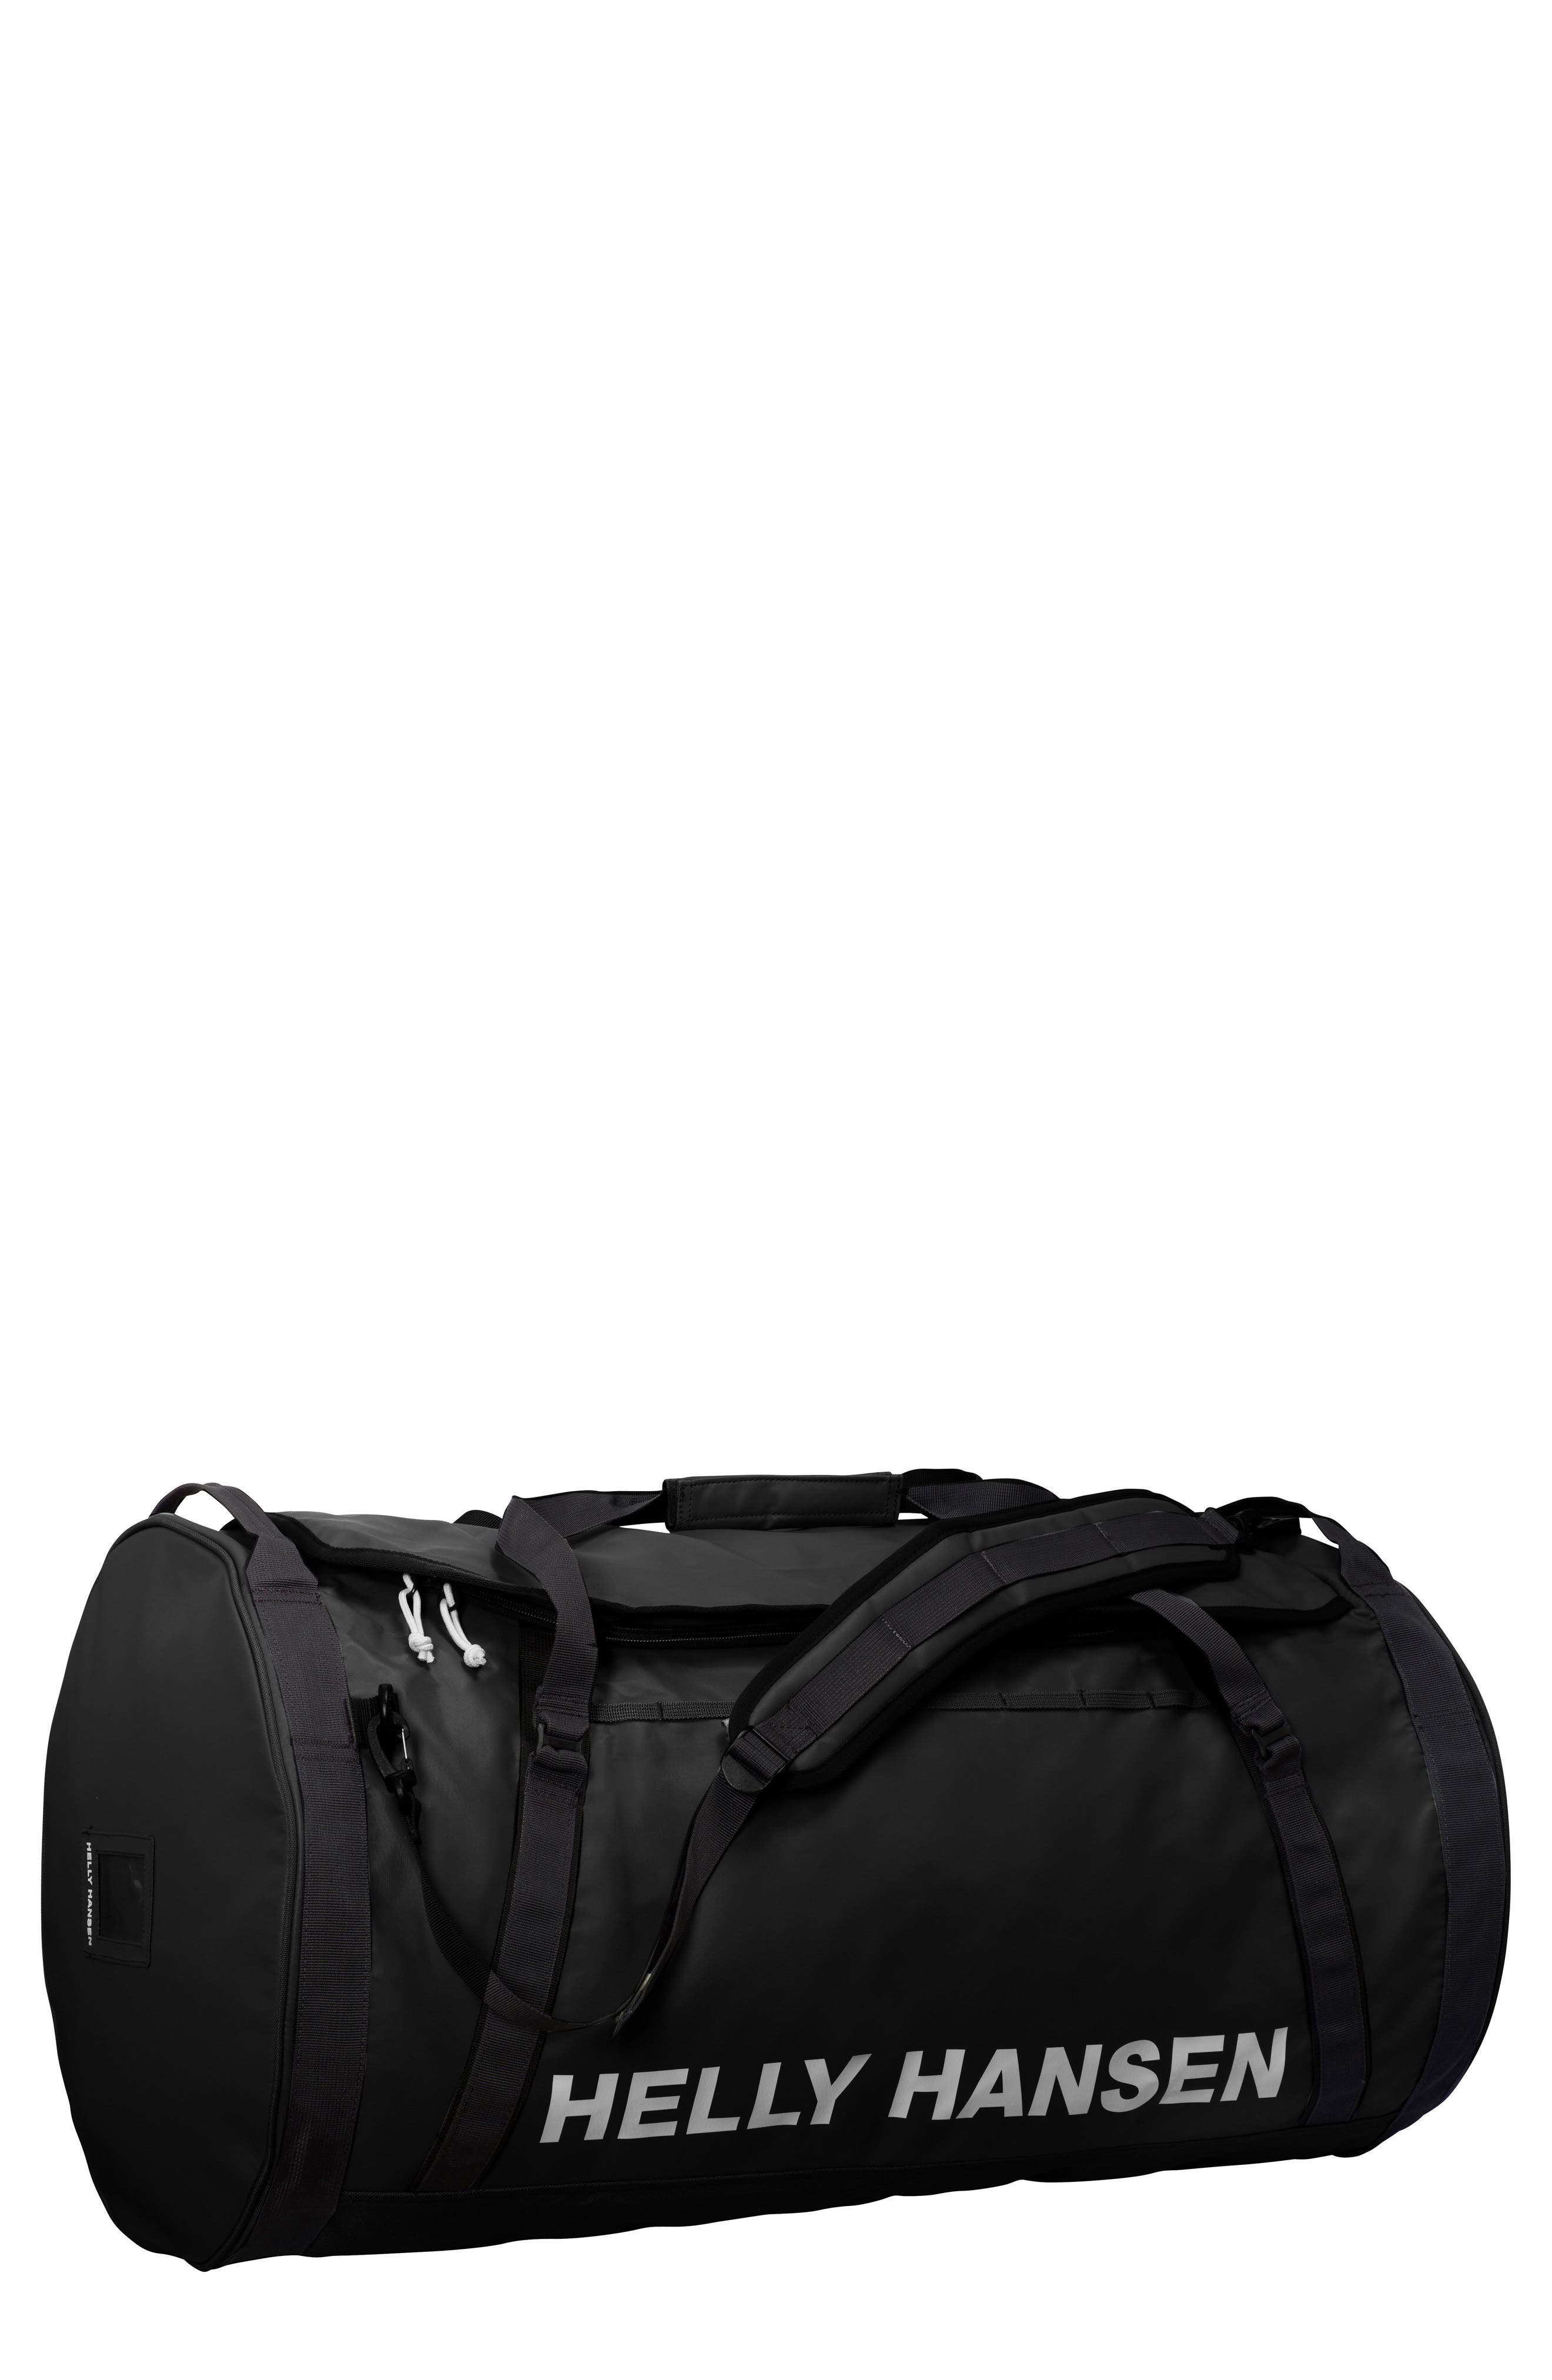 90-Liter Duffel Bag,                         Main,                         color, BLACK